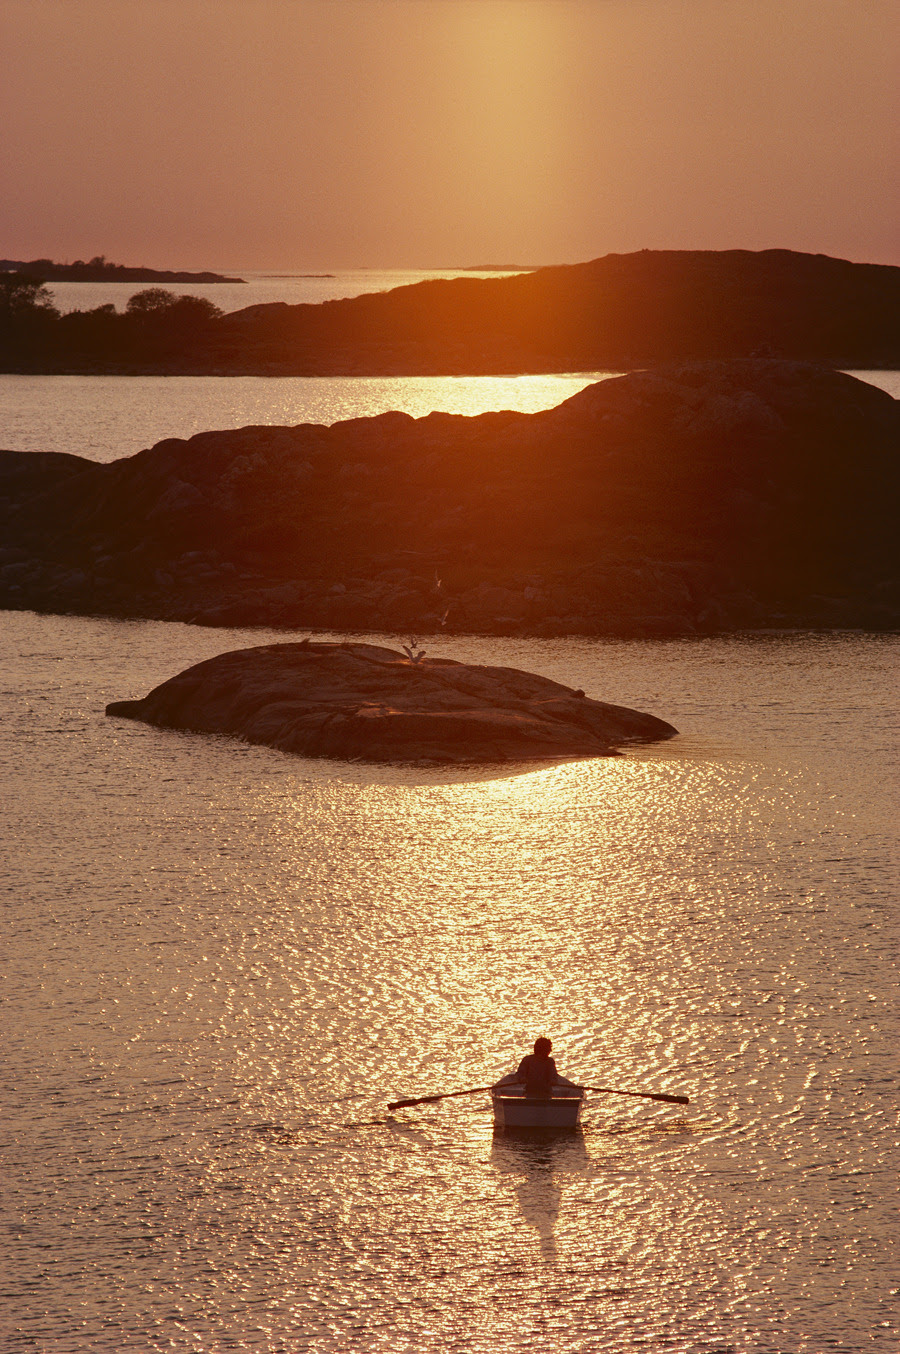 Osterskar Island, Finland.Photograph by Thomas J. Abercrombie, National Geographic